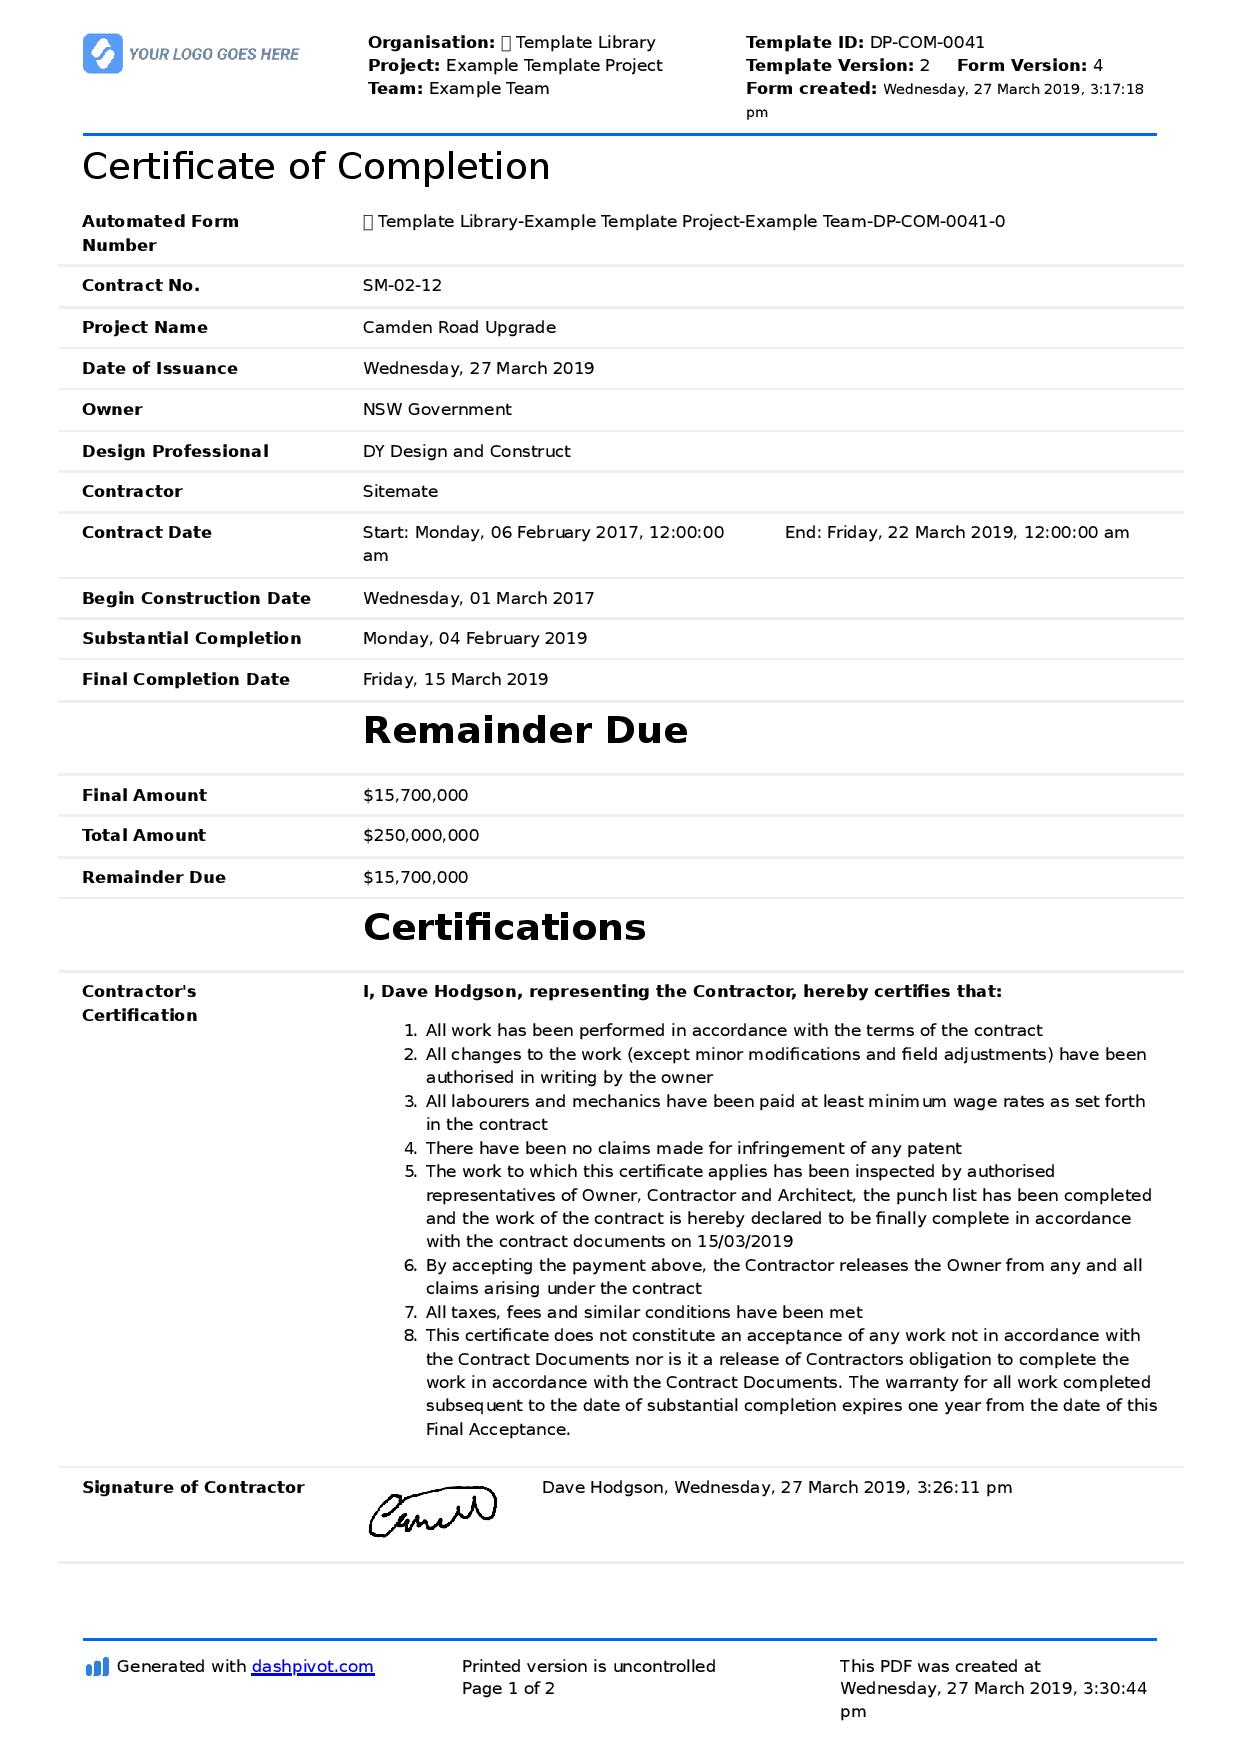 Certificate Of Completion For Construction (Free Template + Within Construction Certificate Of Completion Template